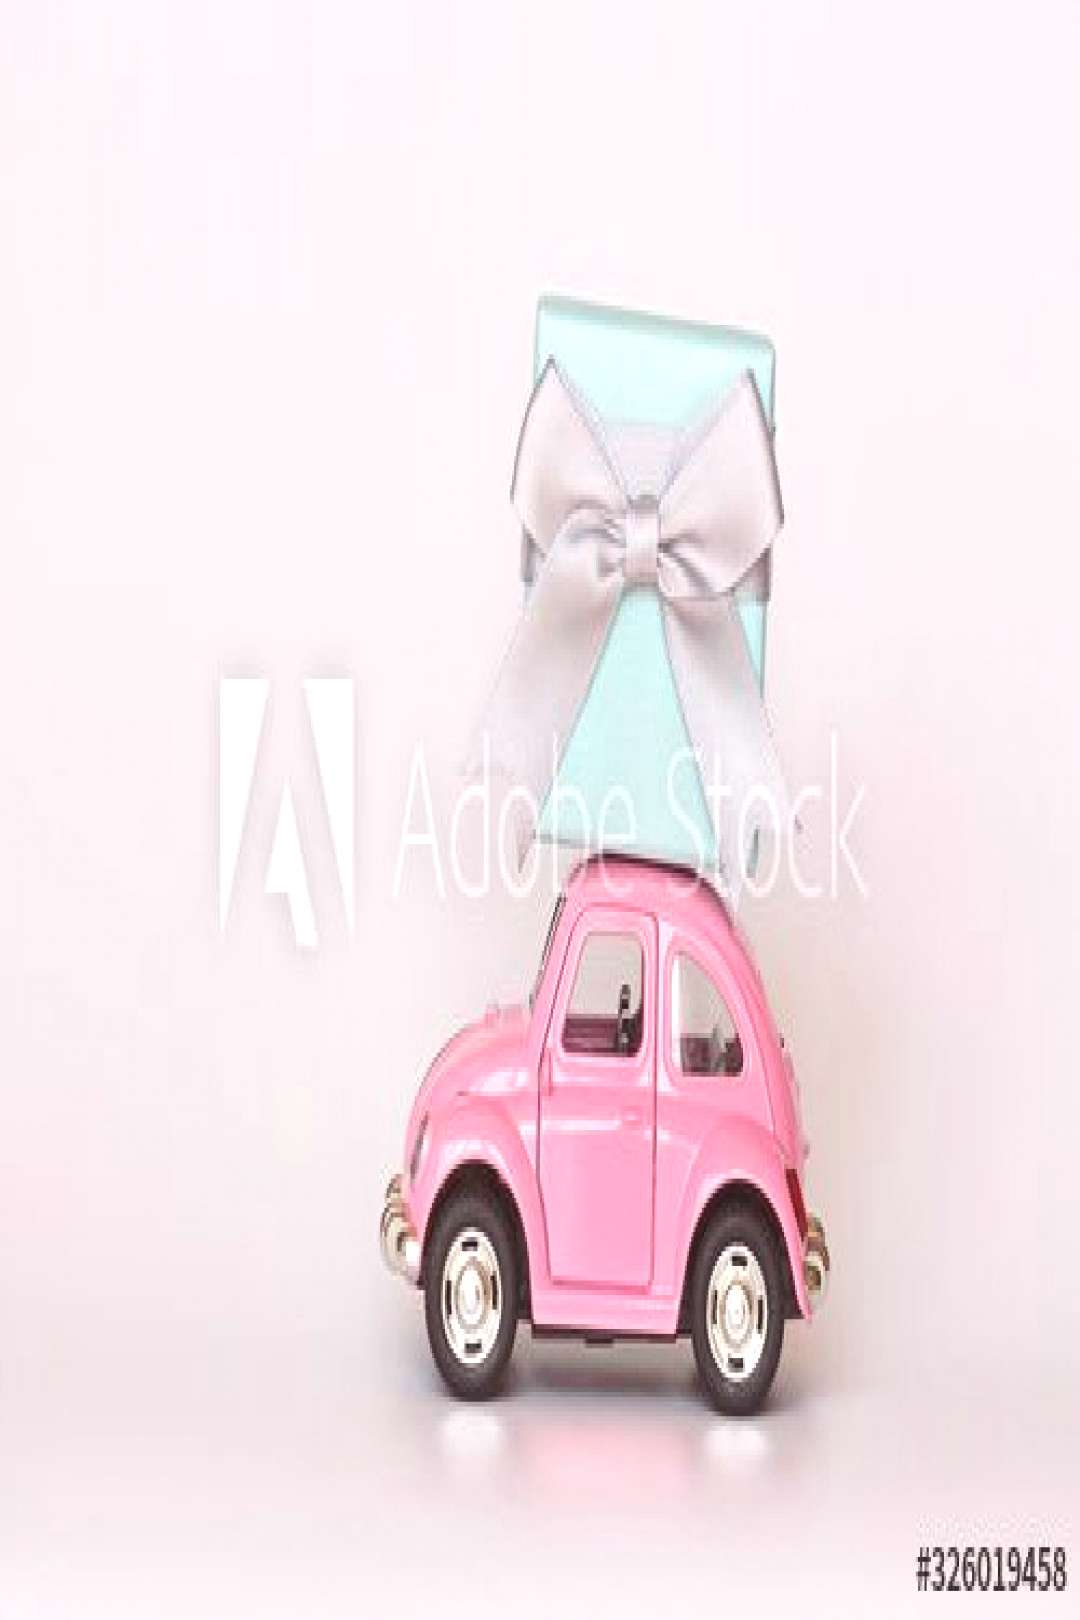 Changxing, China - October 15, 2019 Pink retro toy car delivering gift box on white. ,